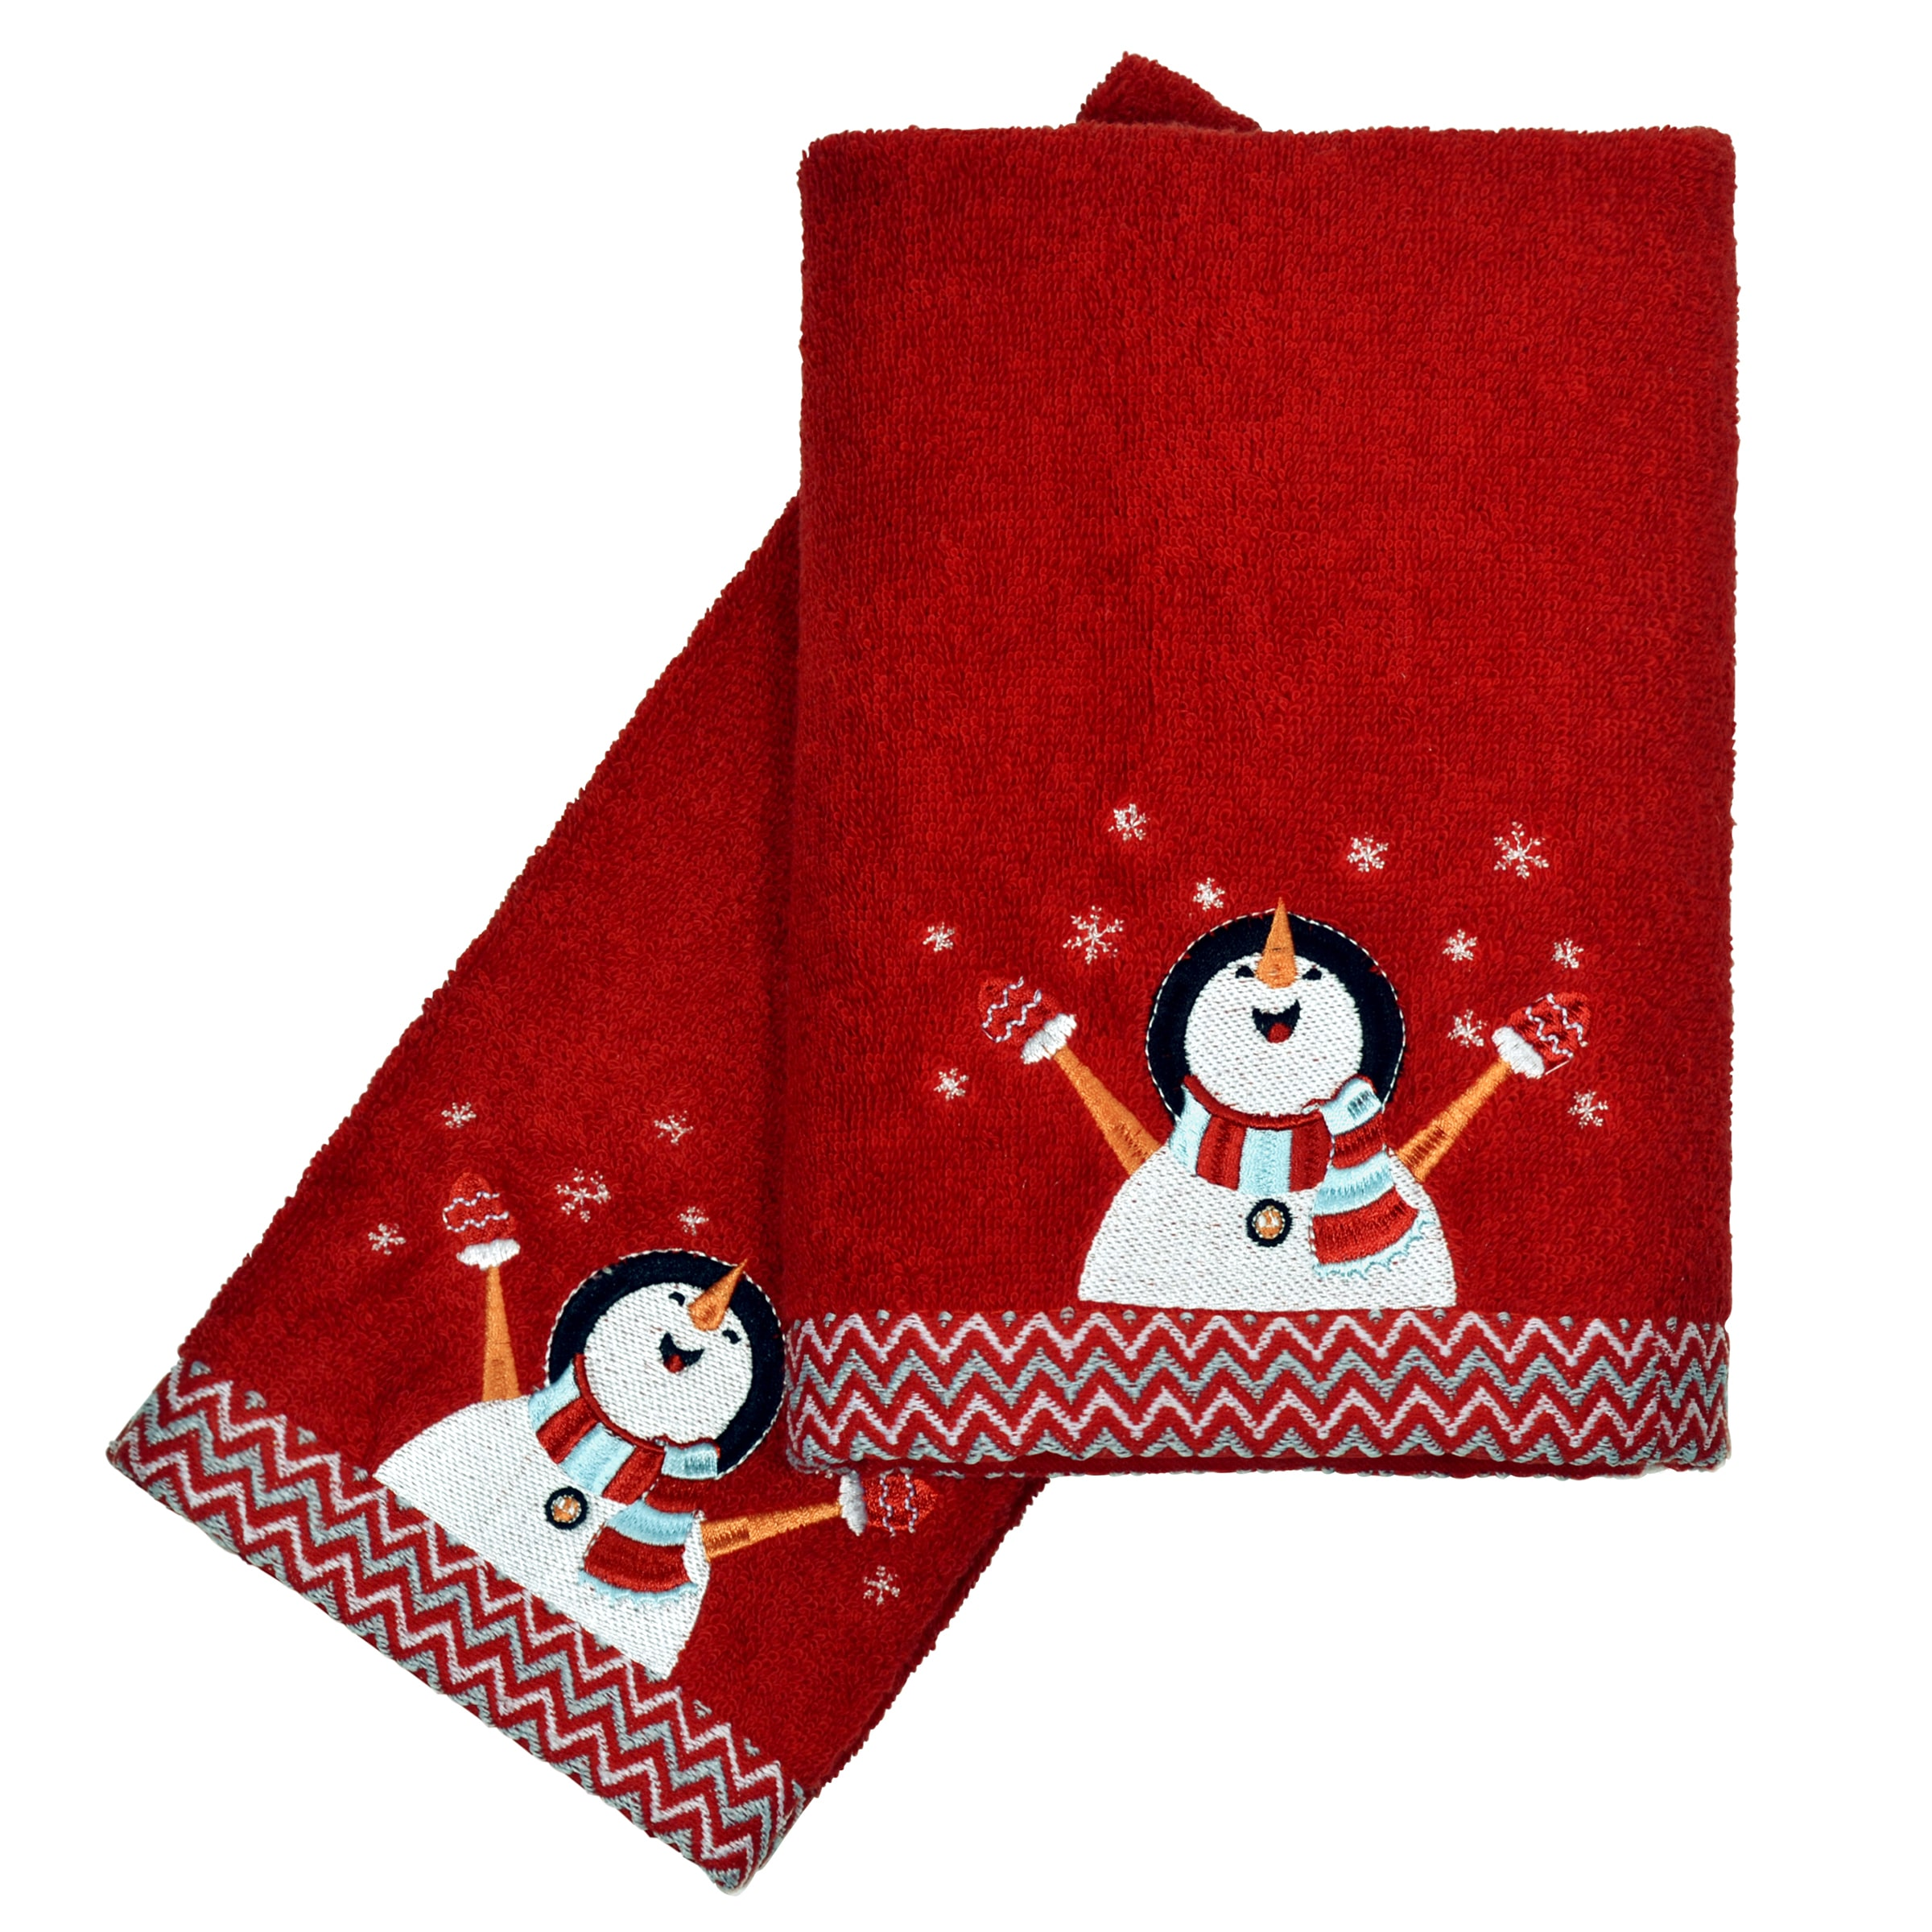 CHF Industries Peri Home Embroidered Snowman 2-piece Fingertip Towel Set